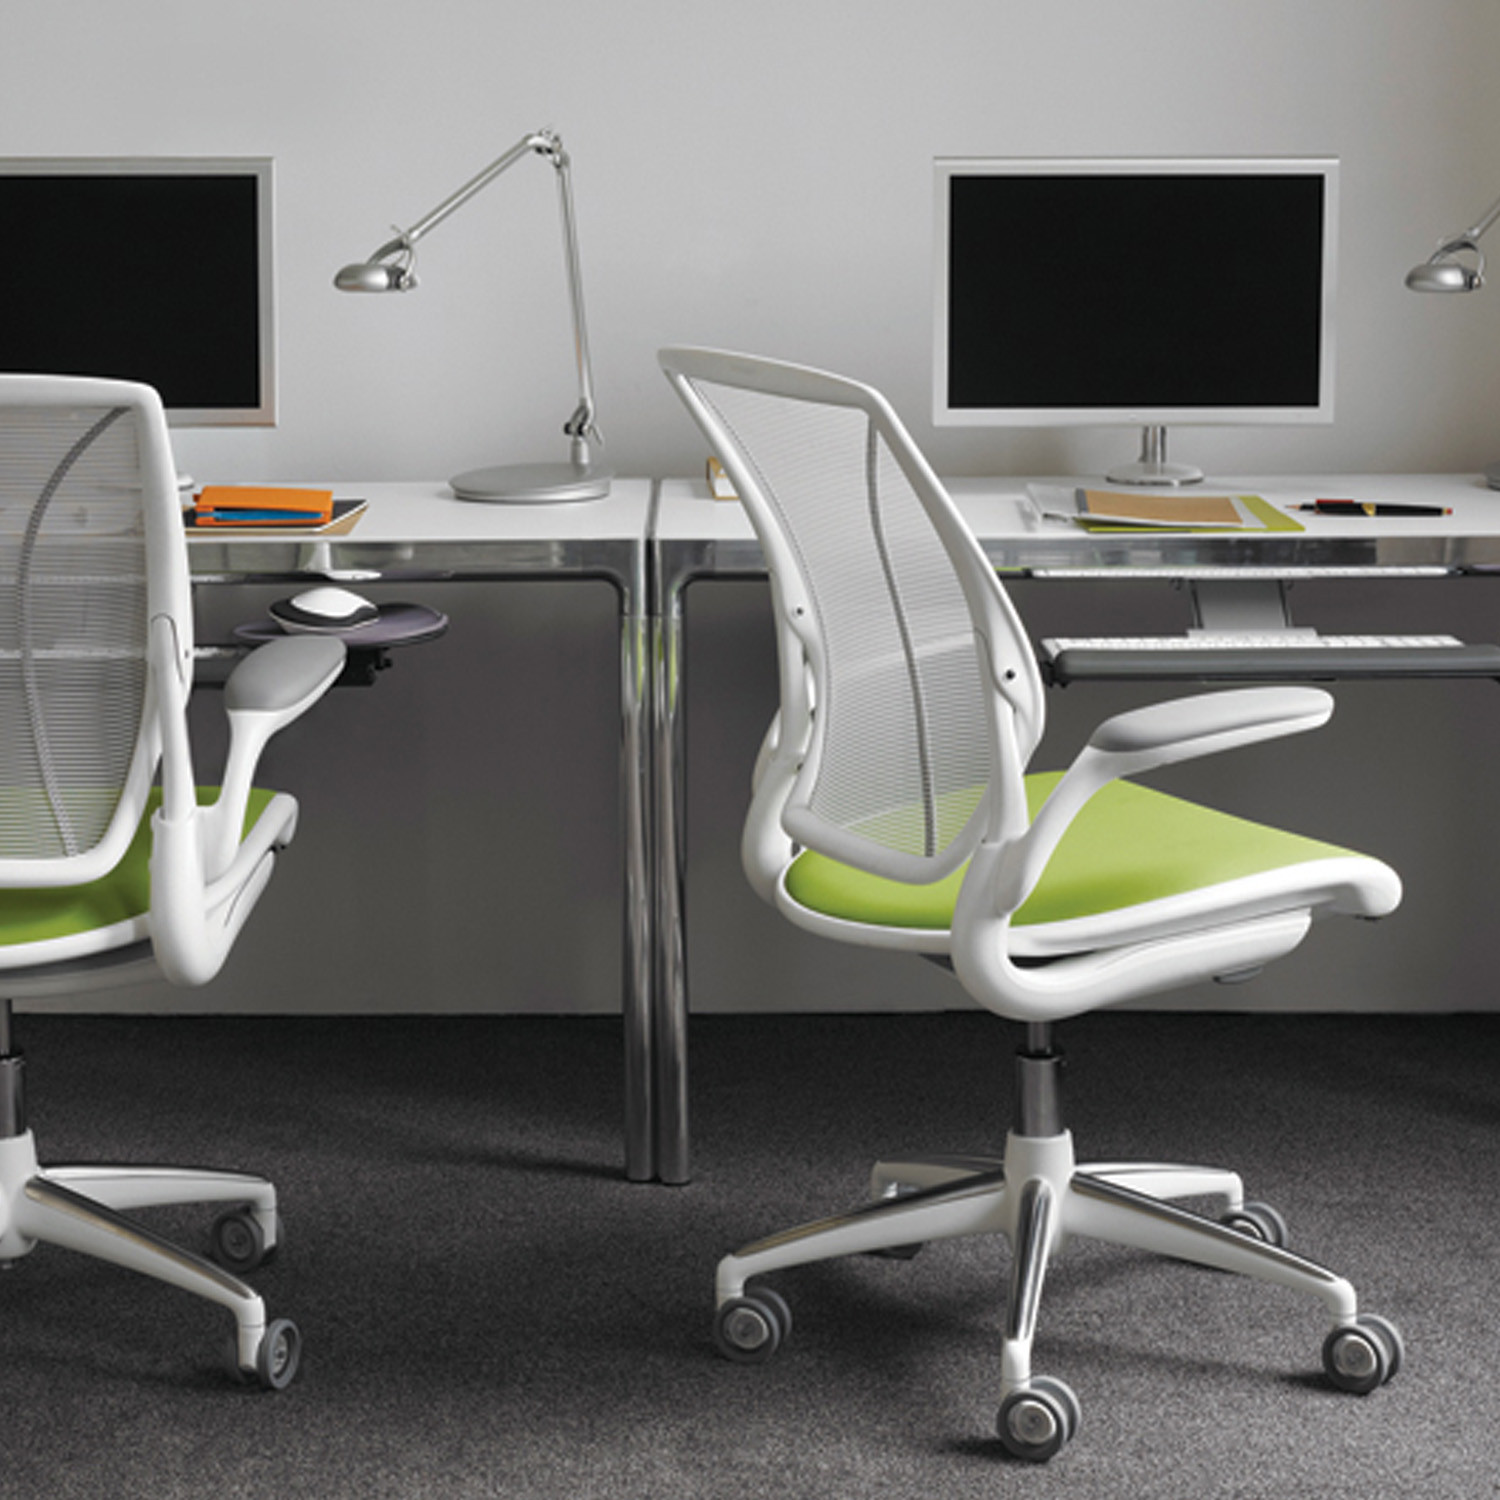 different world chair that converts to single bed diffrient task chairs humanscale mesh office